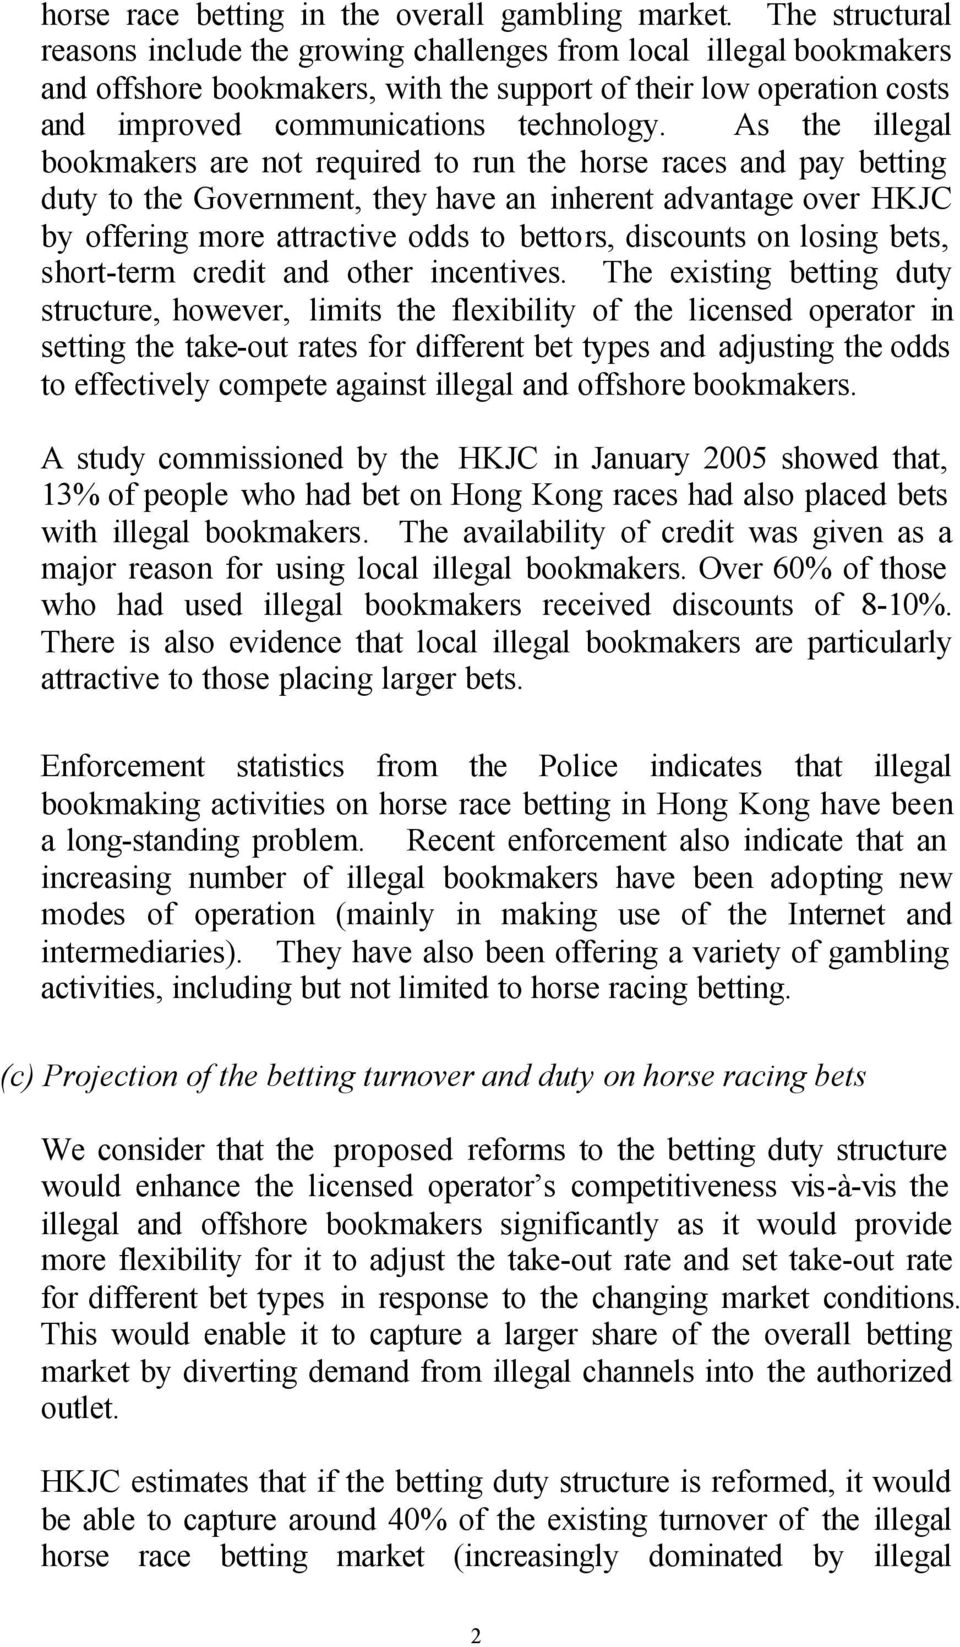 As the illegal bookmakers are not required to run the horse races and pay betting duty to the Government, they have an inherent advantage over HKJC by offering more attractive odds to bettors,